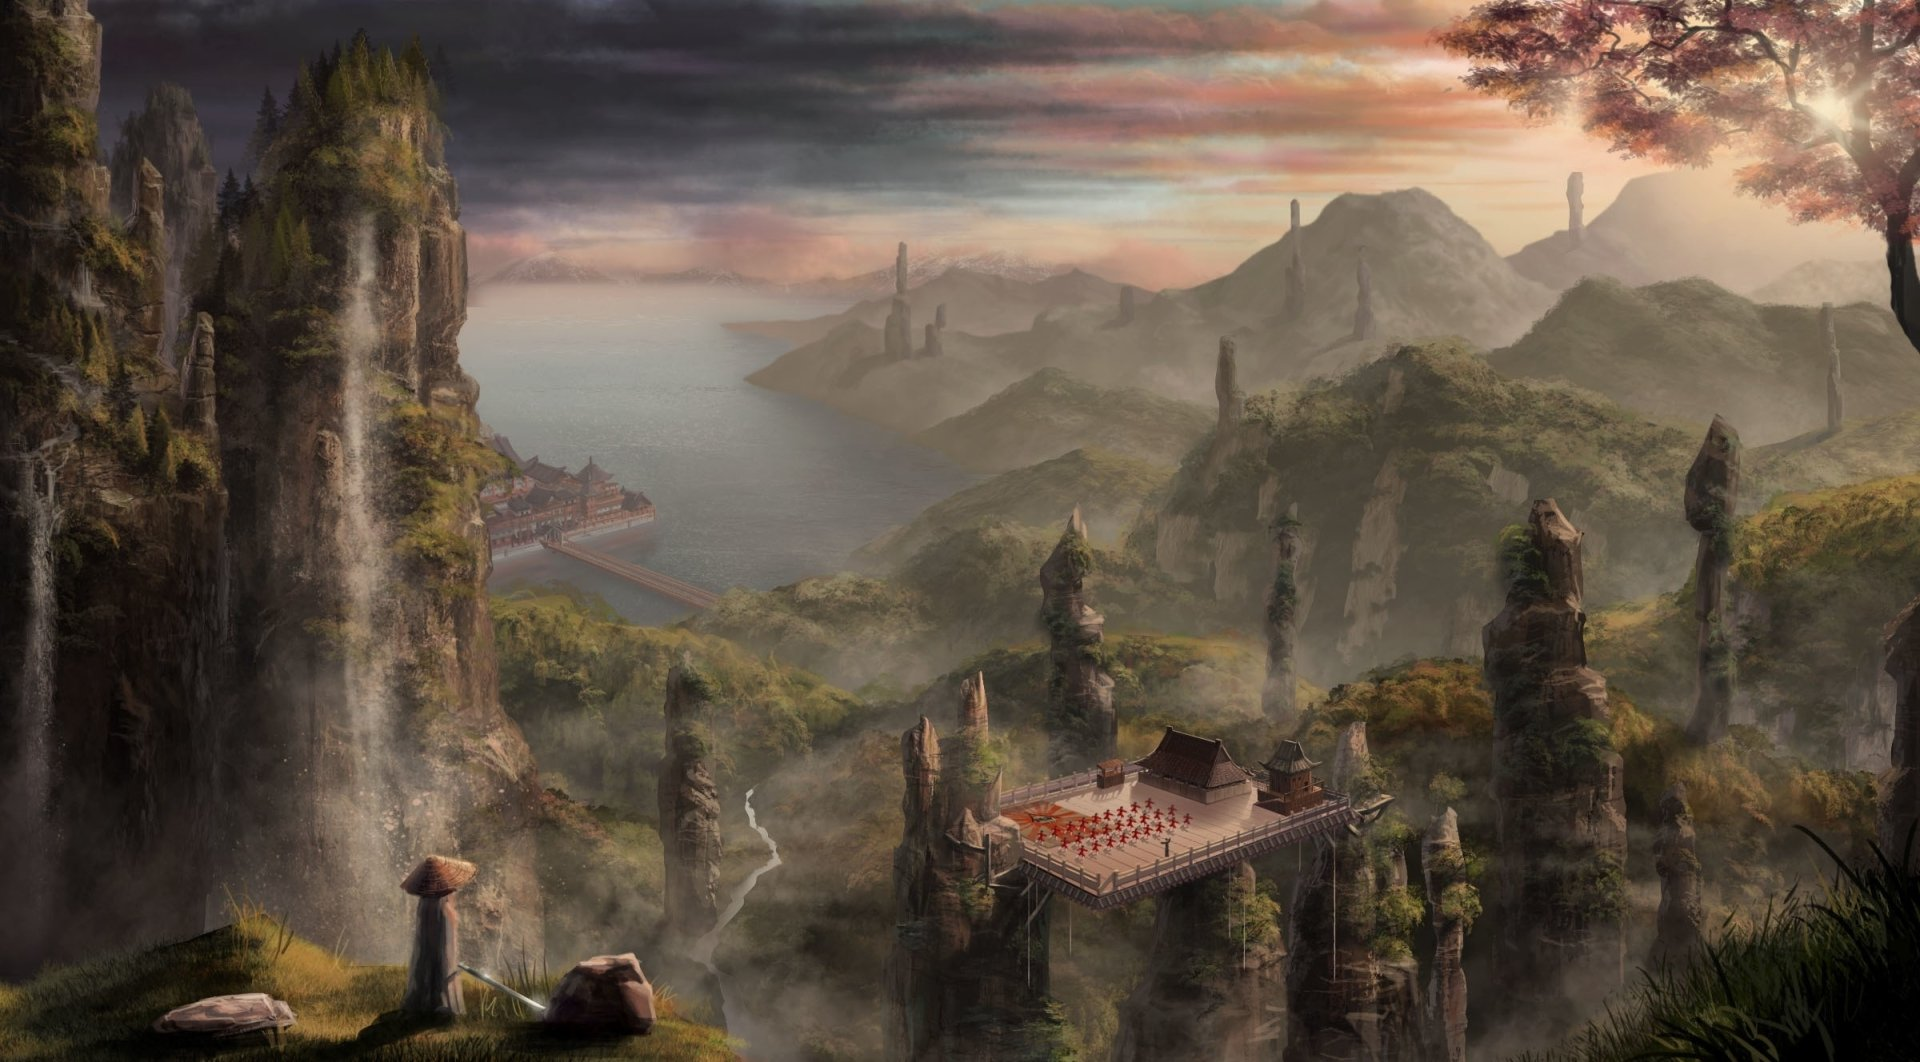 3d Wallpaper Widescreen High Resolution Game Landscape Full Hd Wallpaper And Background Image